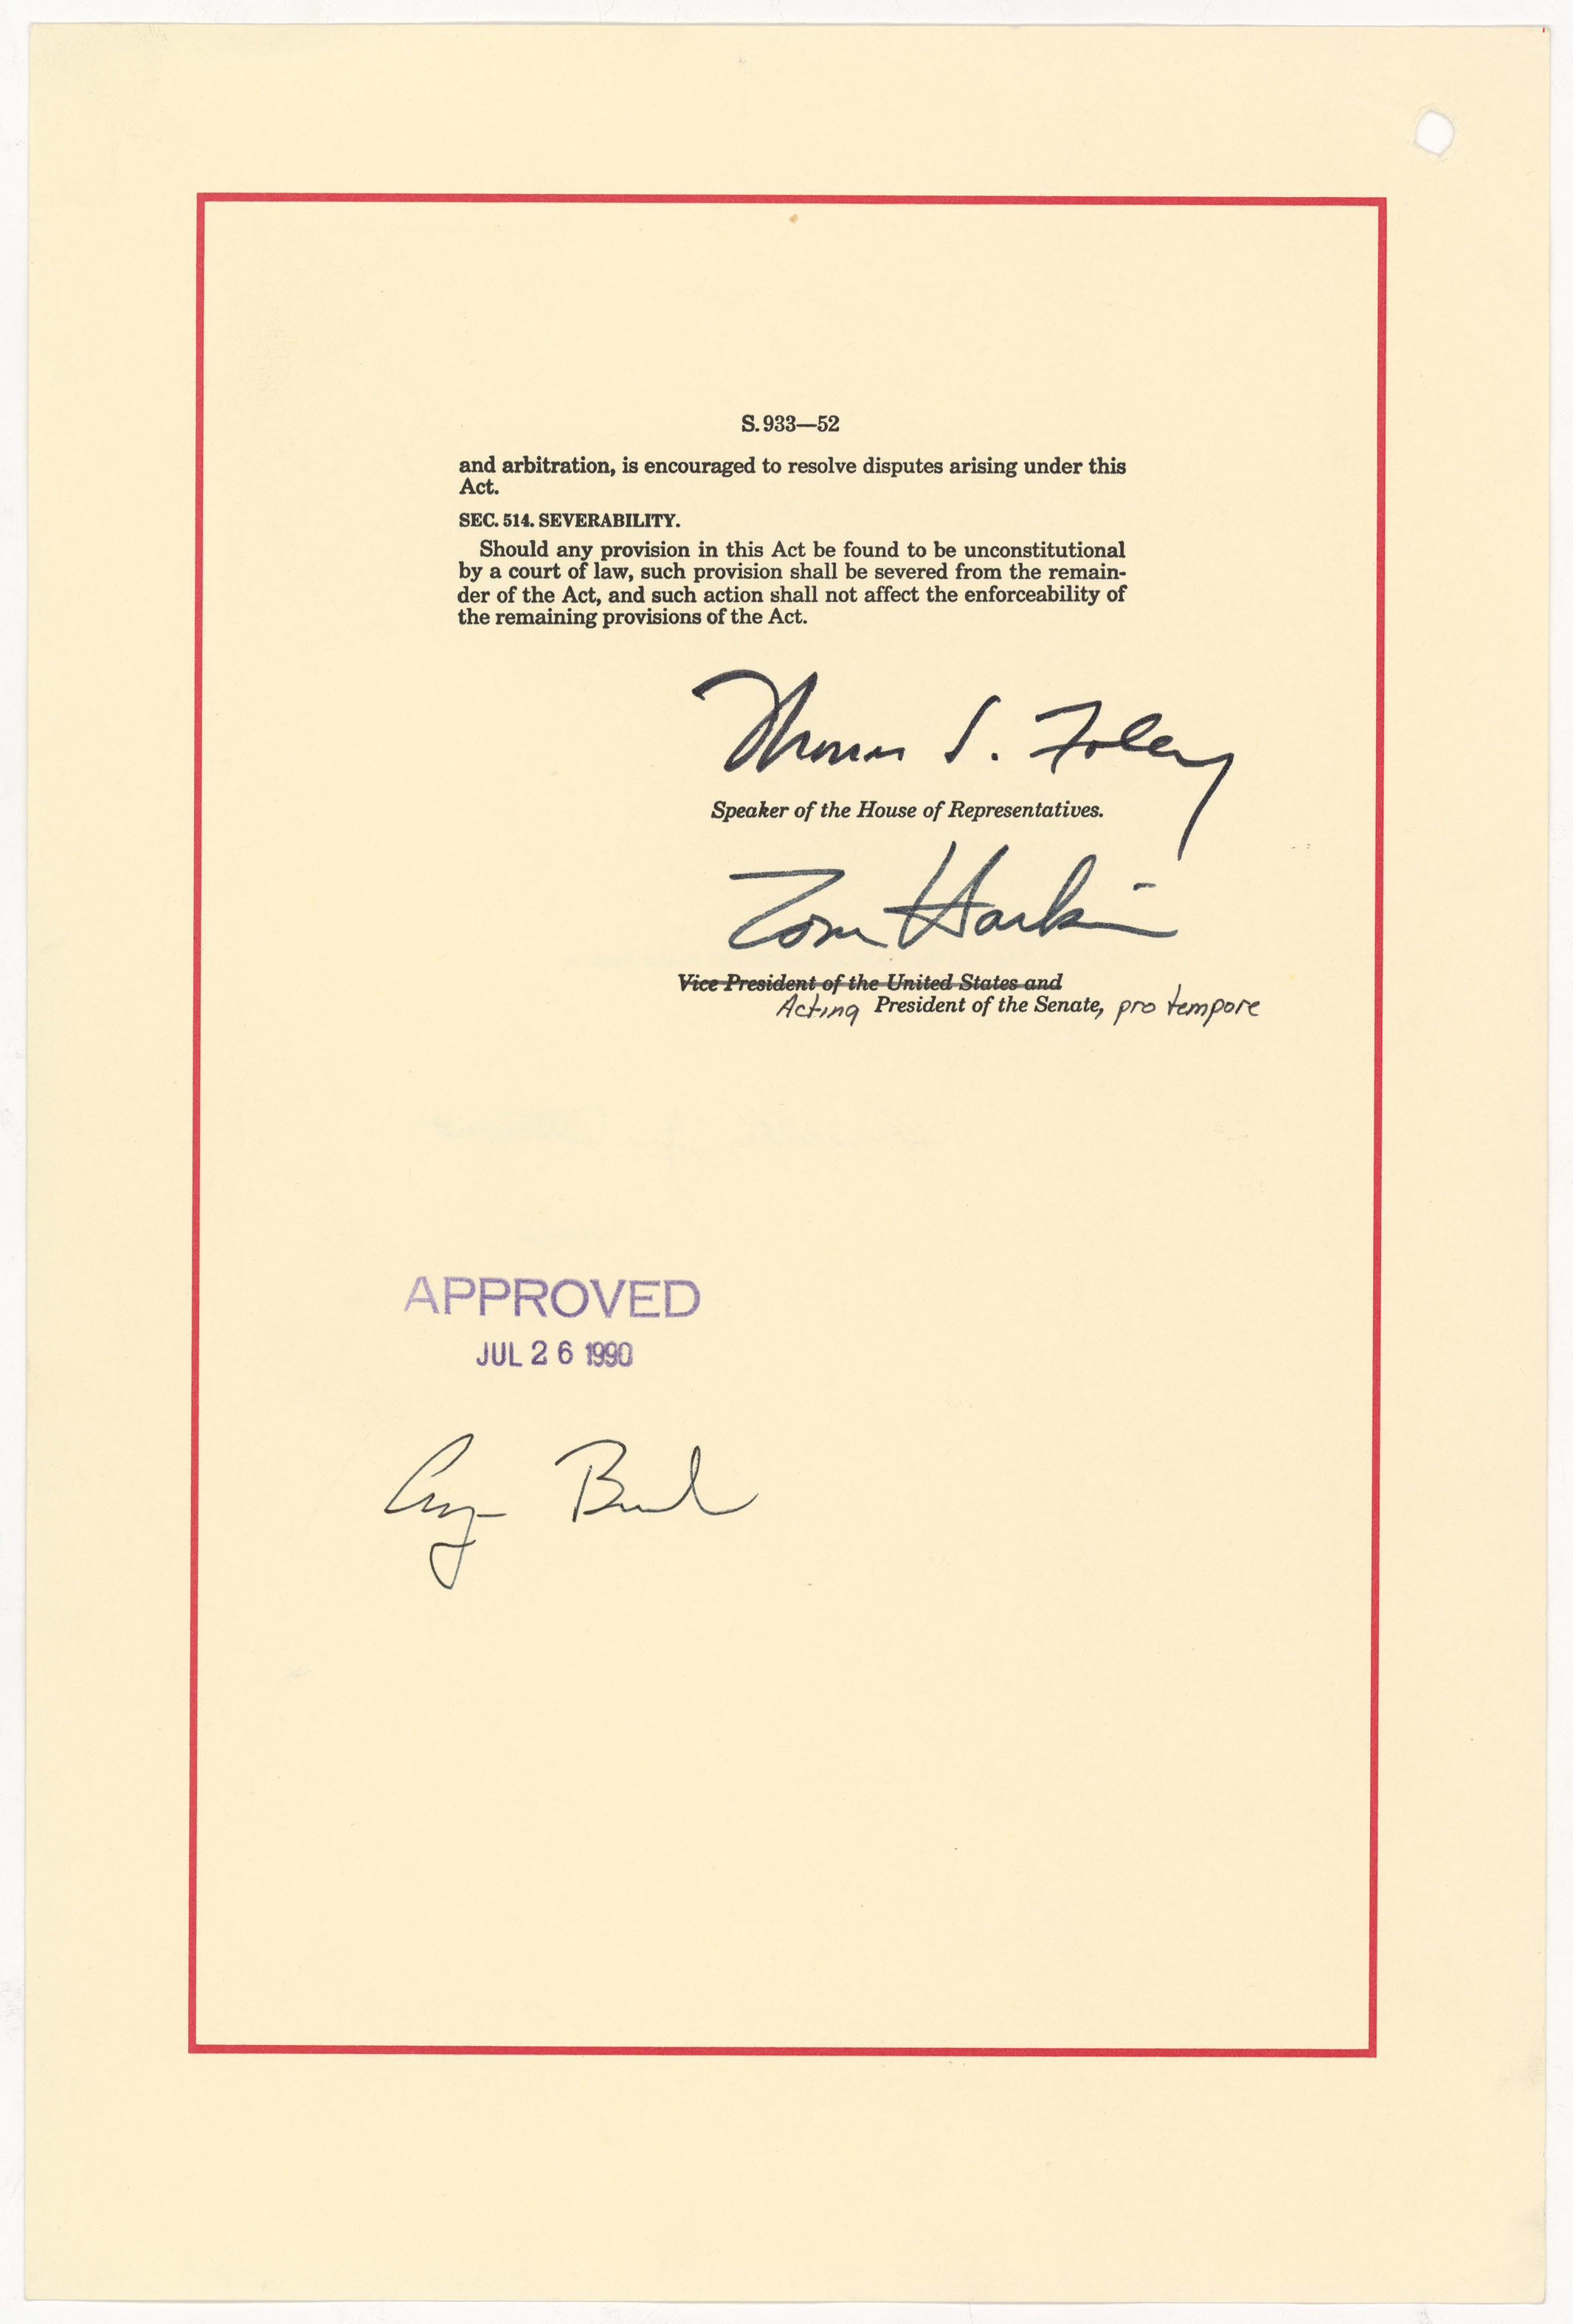 Americans with Disabilities Act, July 26, 1990. (General Records of the U.S. Government, National Archives)